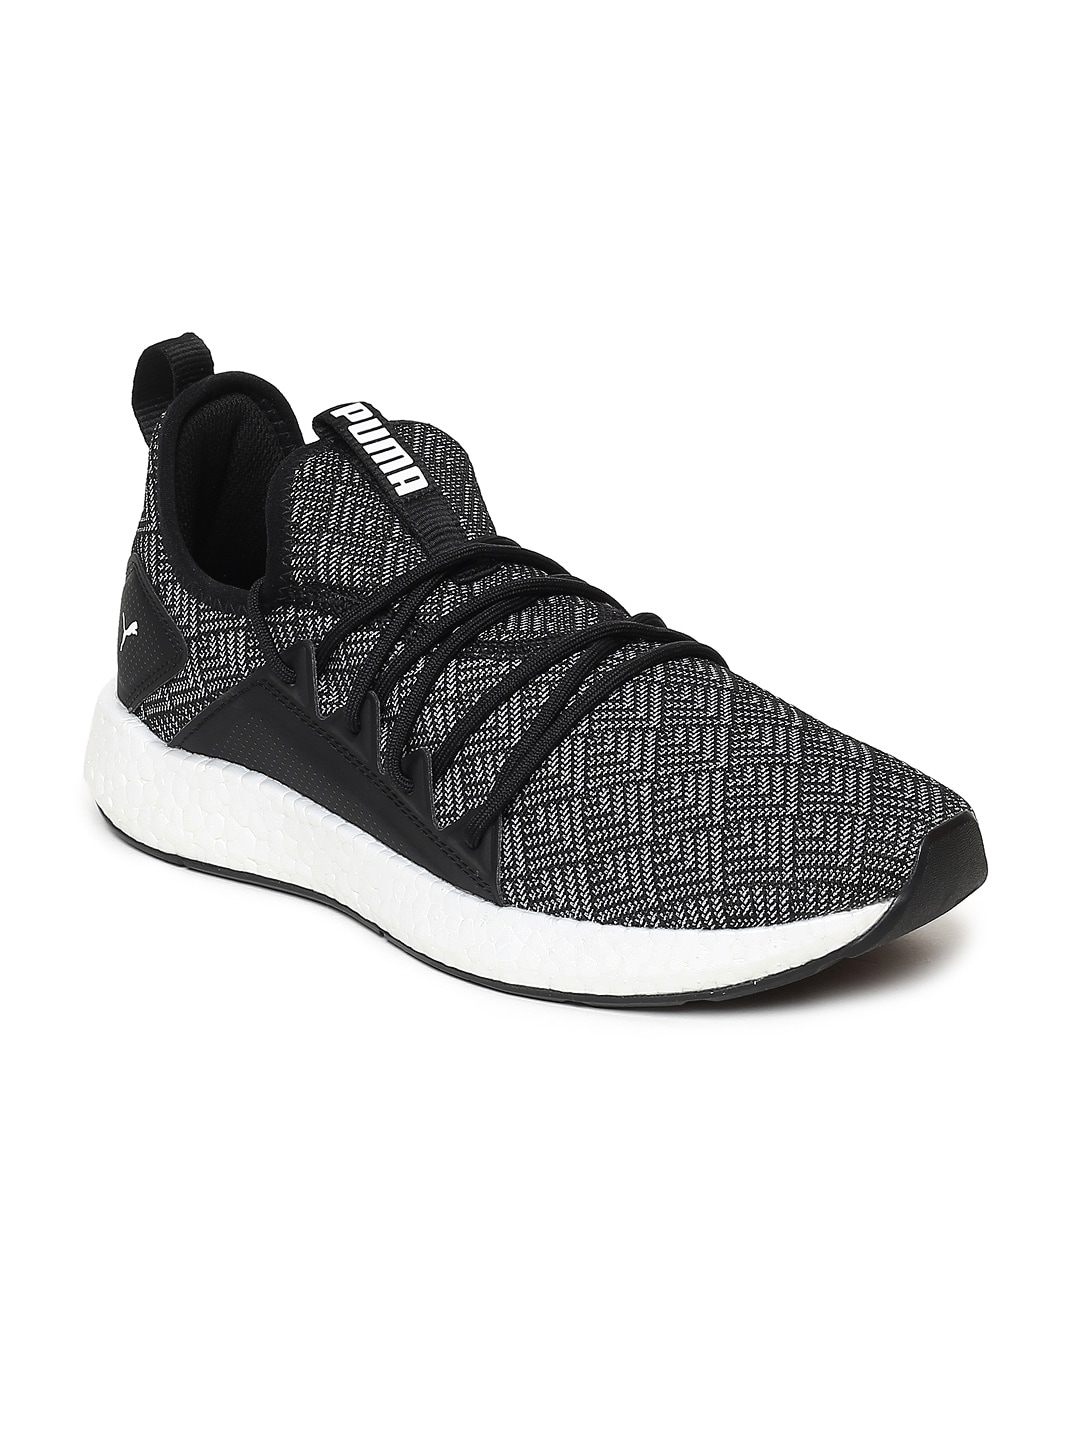 f693b9005edf Sports Shoes for Women - Buy Women Sports Shoes Online